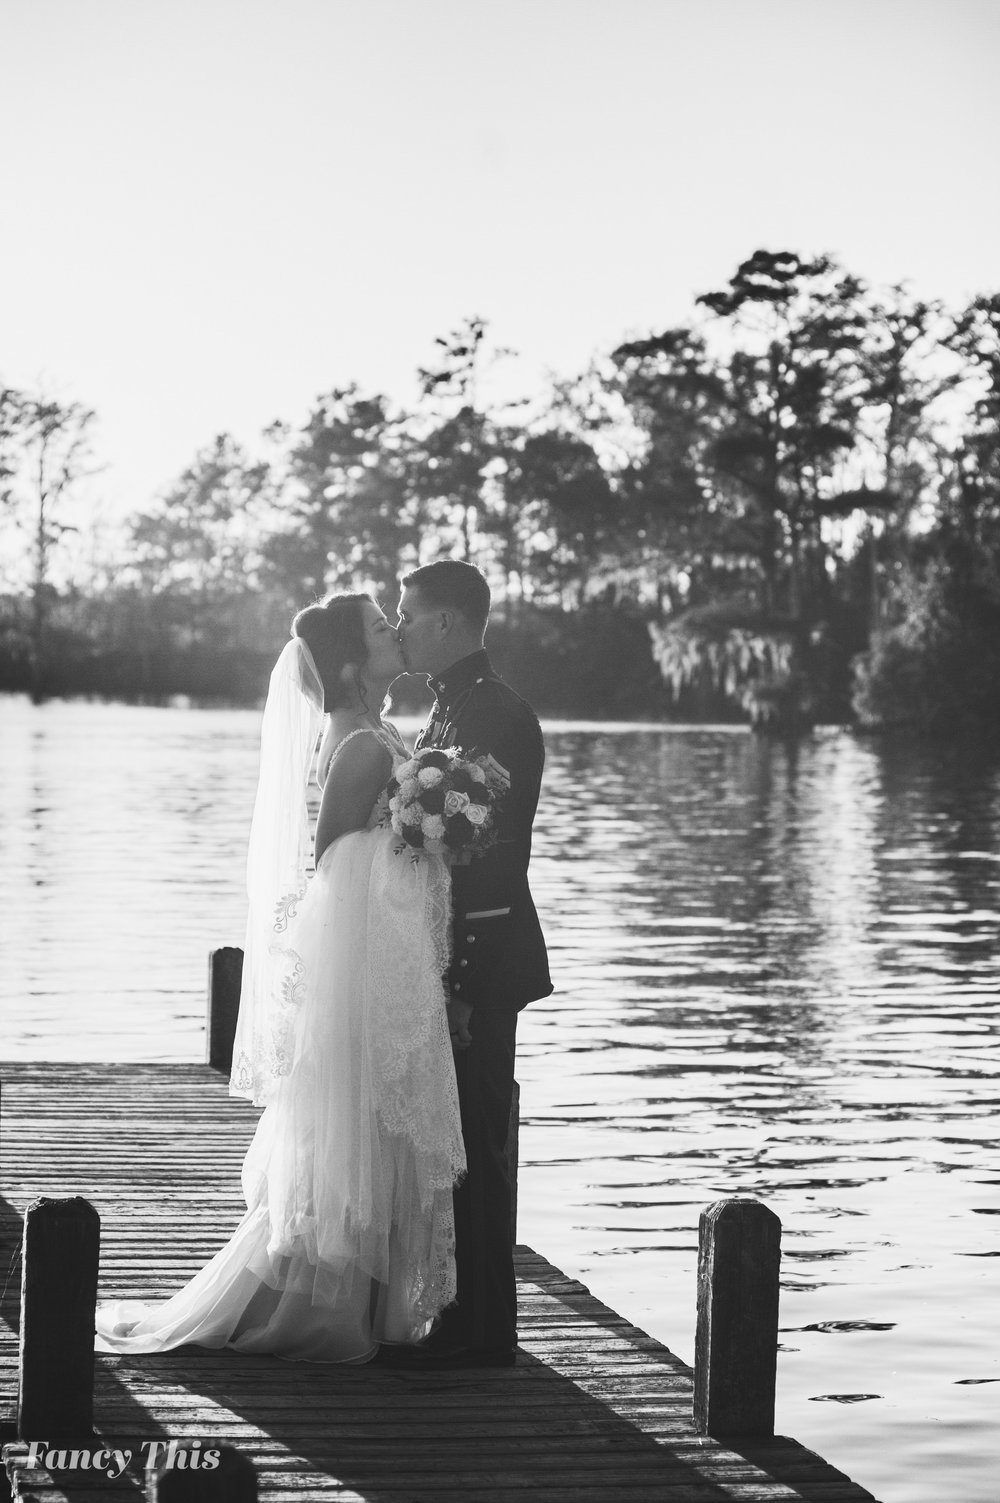 edentonwedding_linksatmulberryhillweddingphotography_fancythis-250.jpg